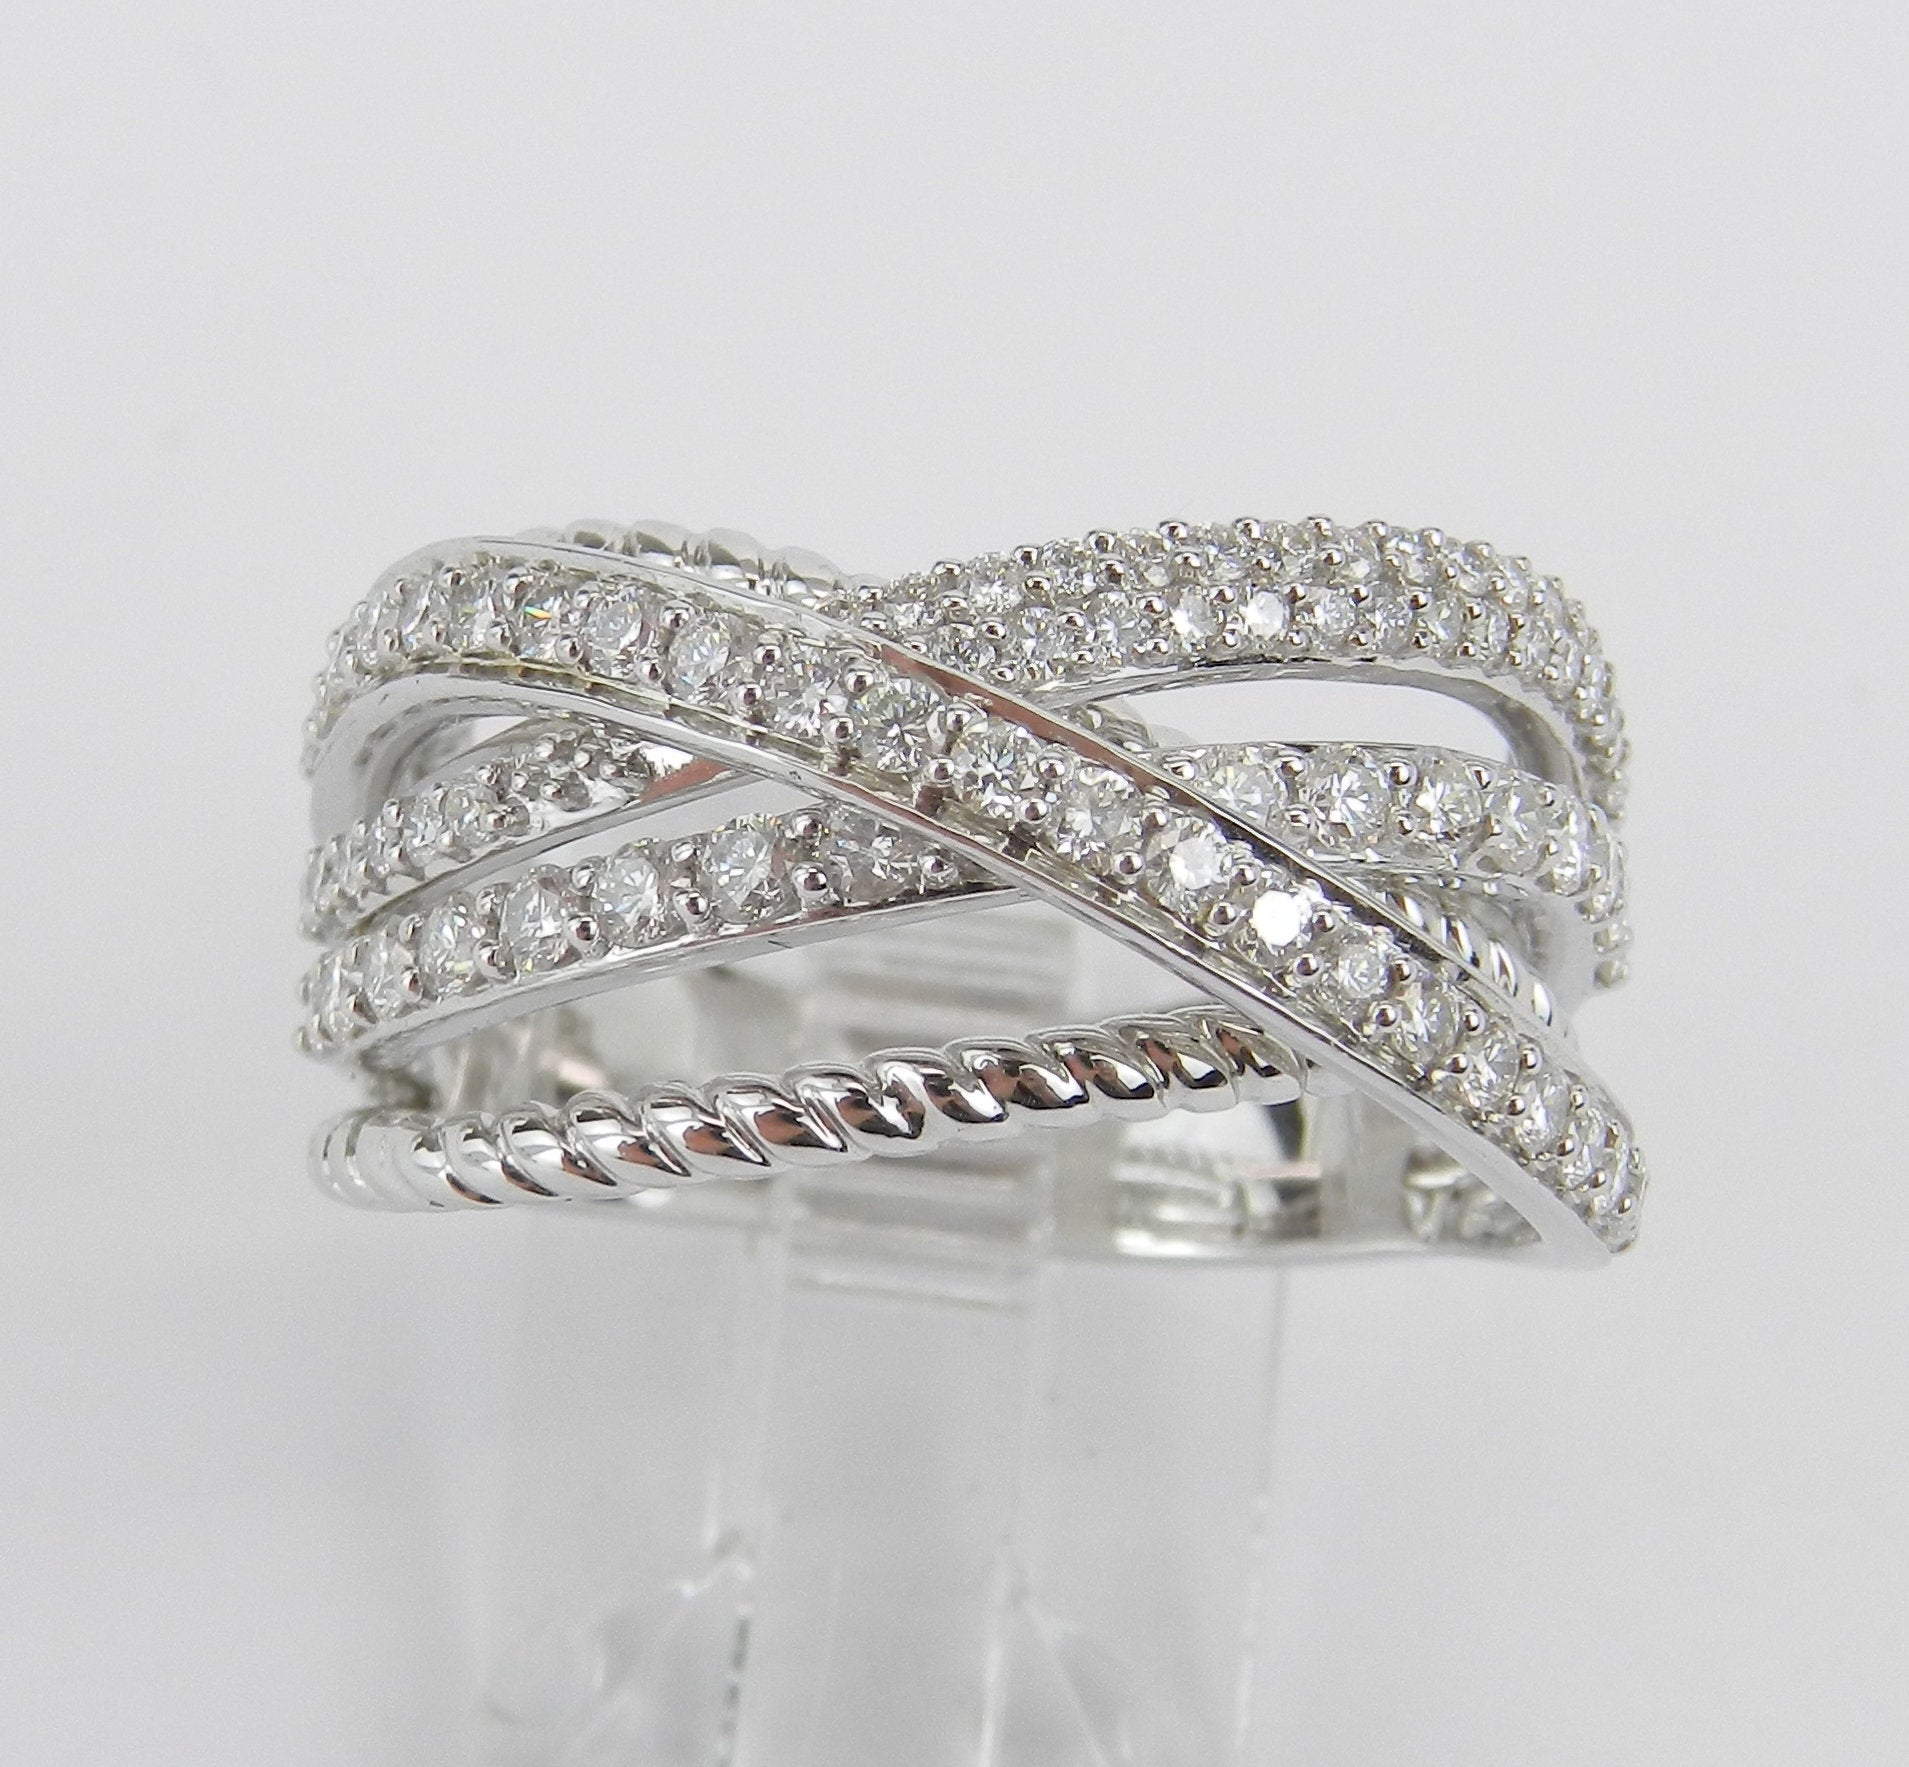 Diamond Crossover Ring, Anniversary Ring, 14k White Gold Throughout Most Up To Date Diamond Multi Row Anniversary Rings In White Gold (View 4 of 25)